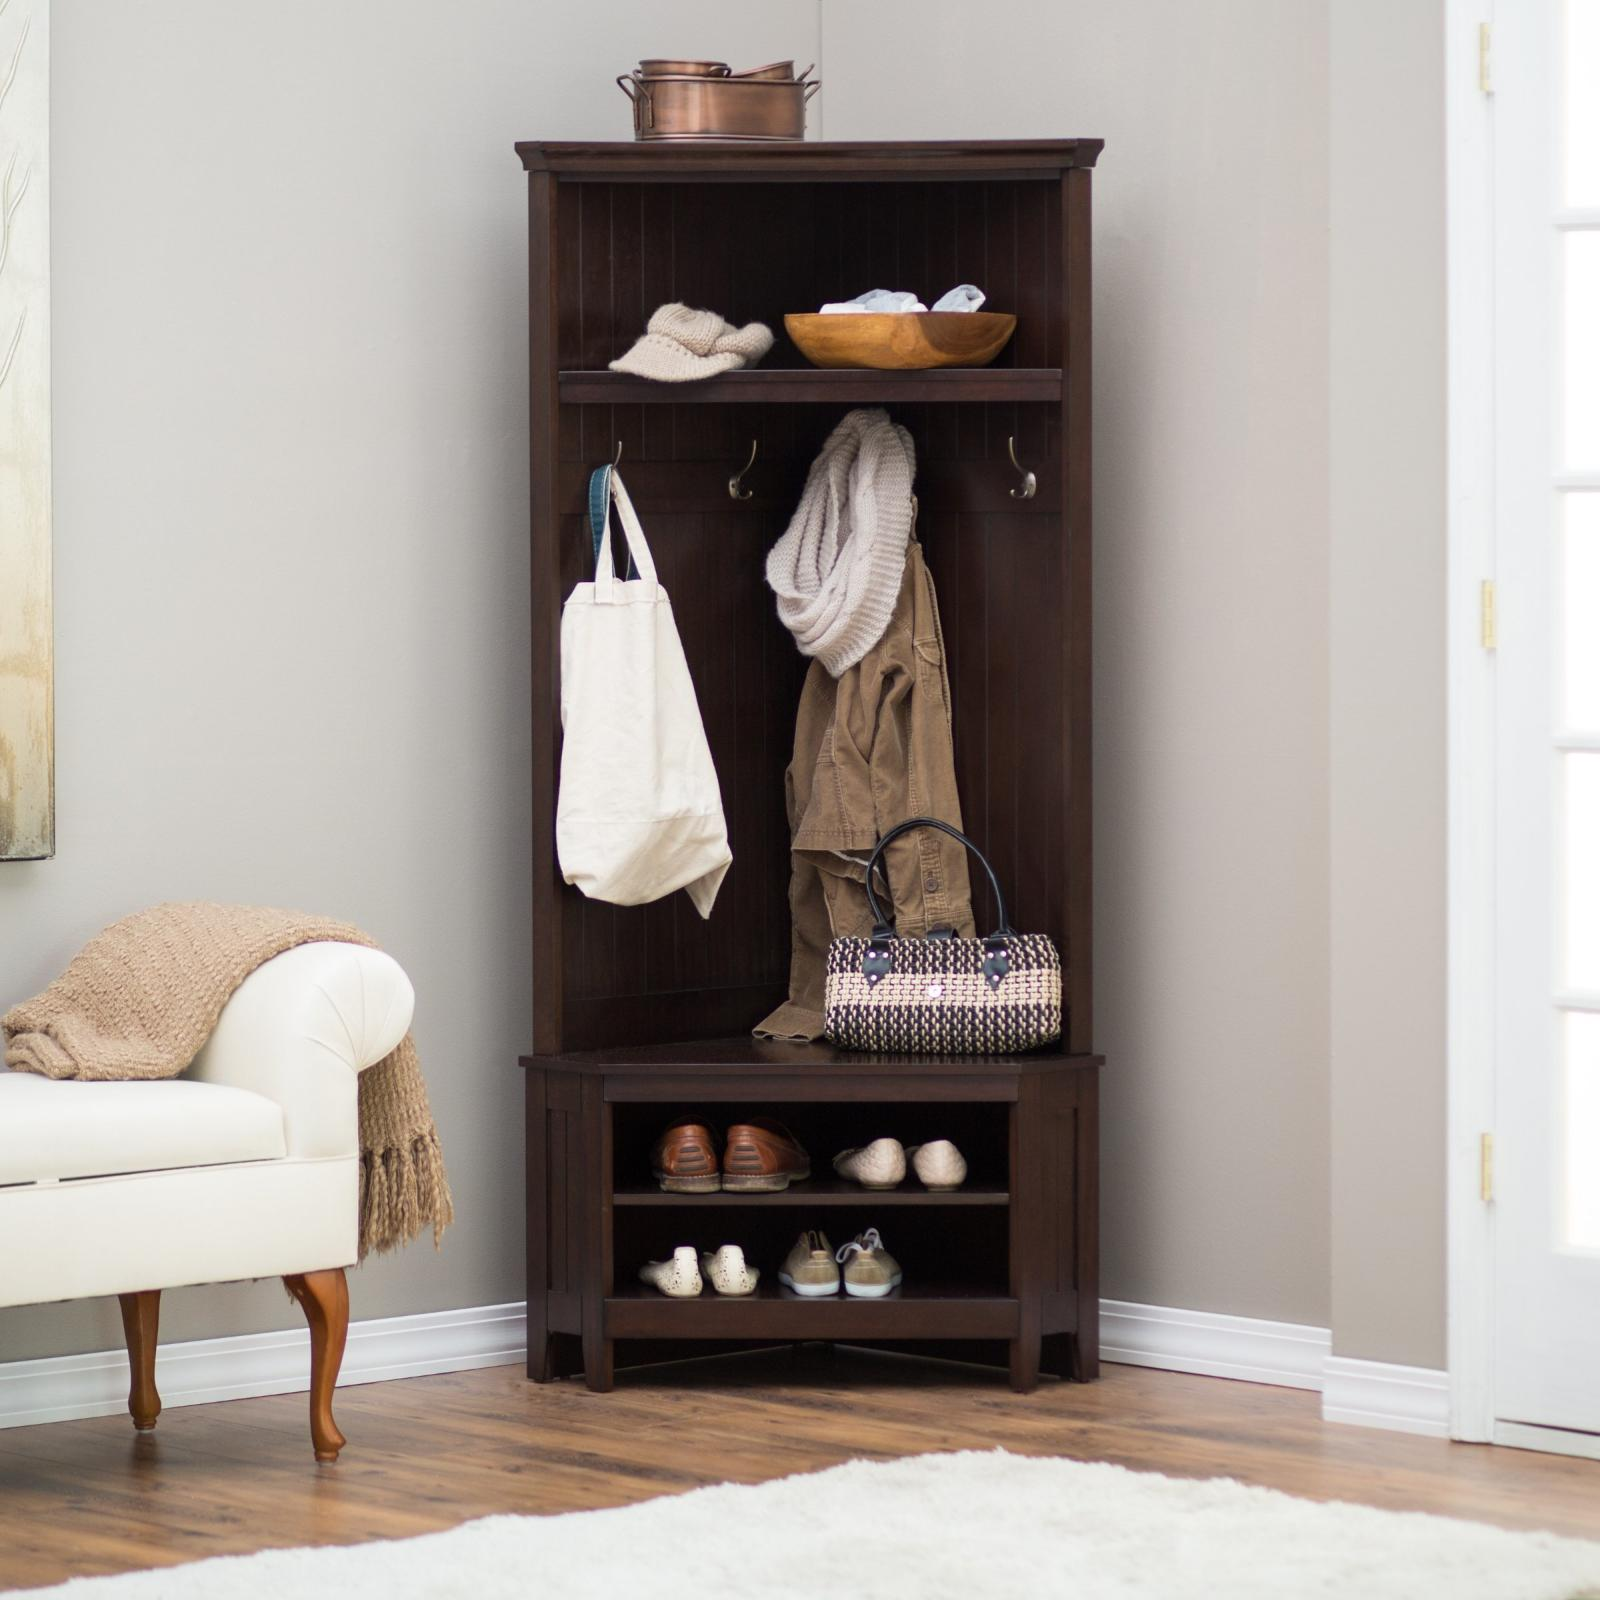 Entryway Storage Bench Corner Hall Tree Furniture Wood Shoe Organizer Coat Rack Ebay